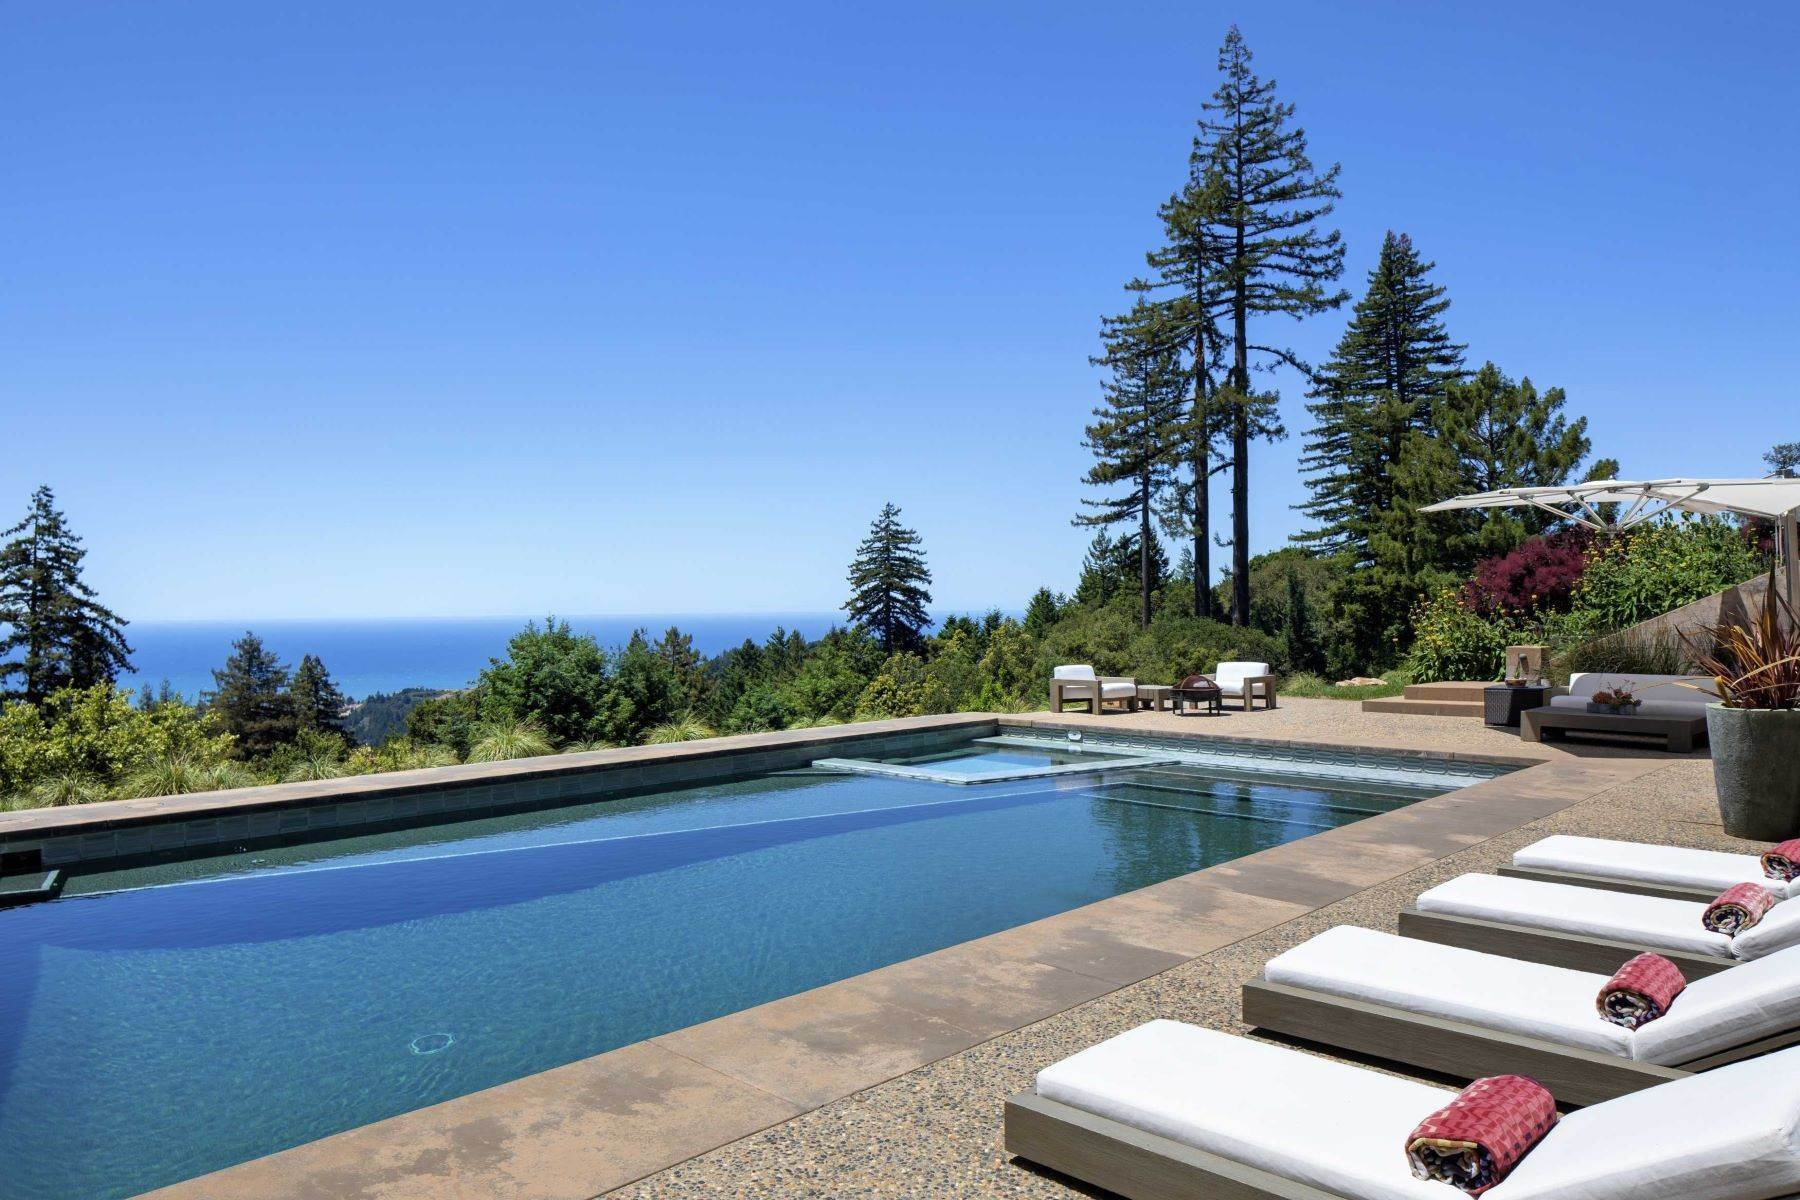 2. Single Family Homes for Sale at Boogie Ranch 1 Thayer Road Santa Cruz, California 95060 United States